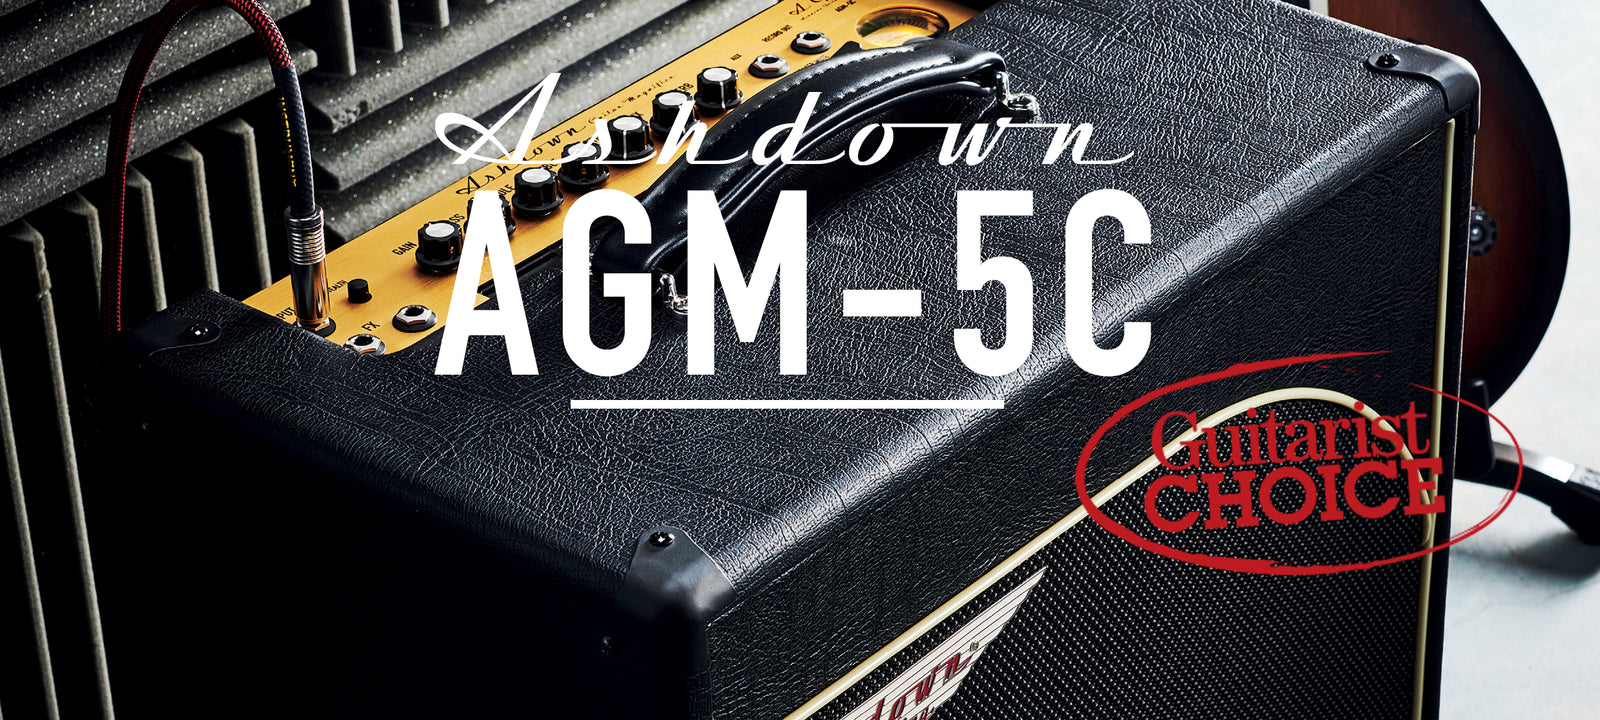 Ashdown AGM-5C Guitarist Choice Award